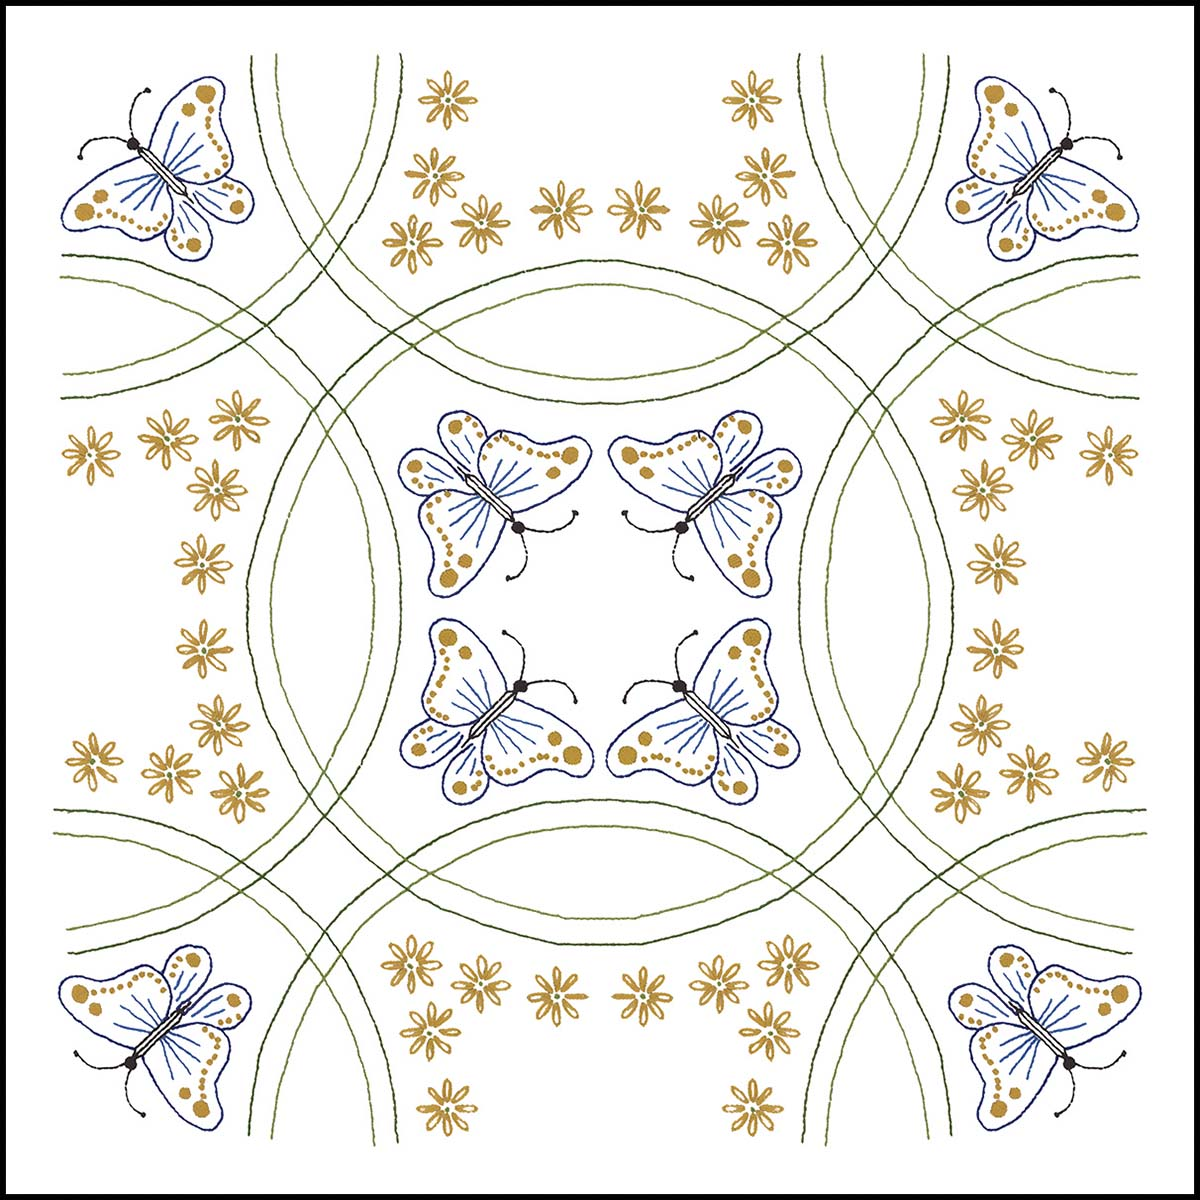 Herrschners® Butterflies & Rings Quilt Blocks Stamped Embroidery